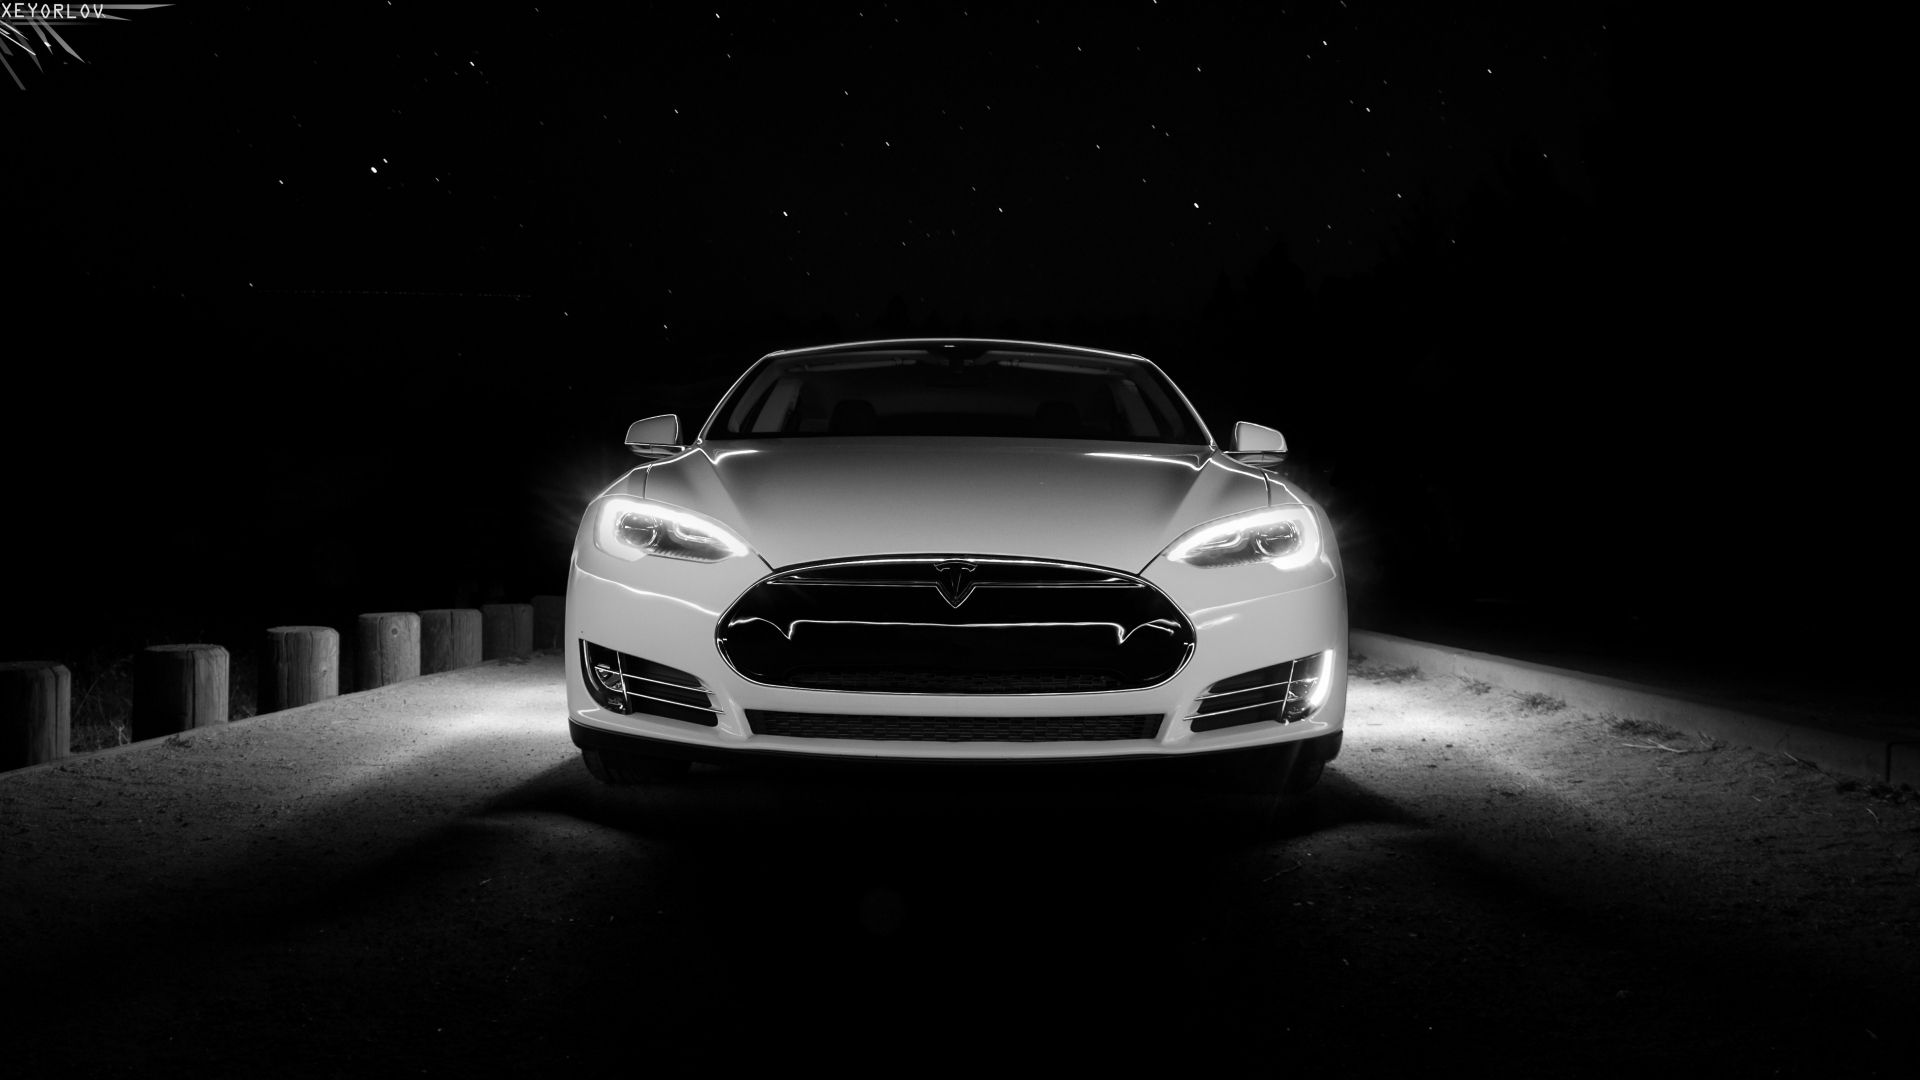 White Tesla Front  for 1920 x 1080 HDTV 1080p resolution